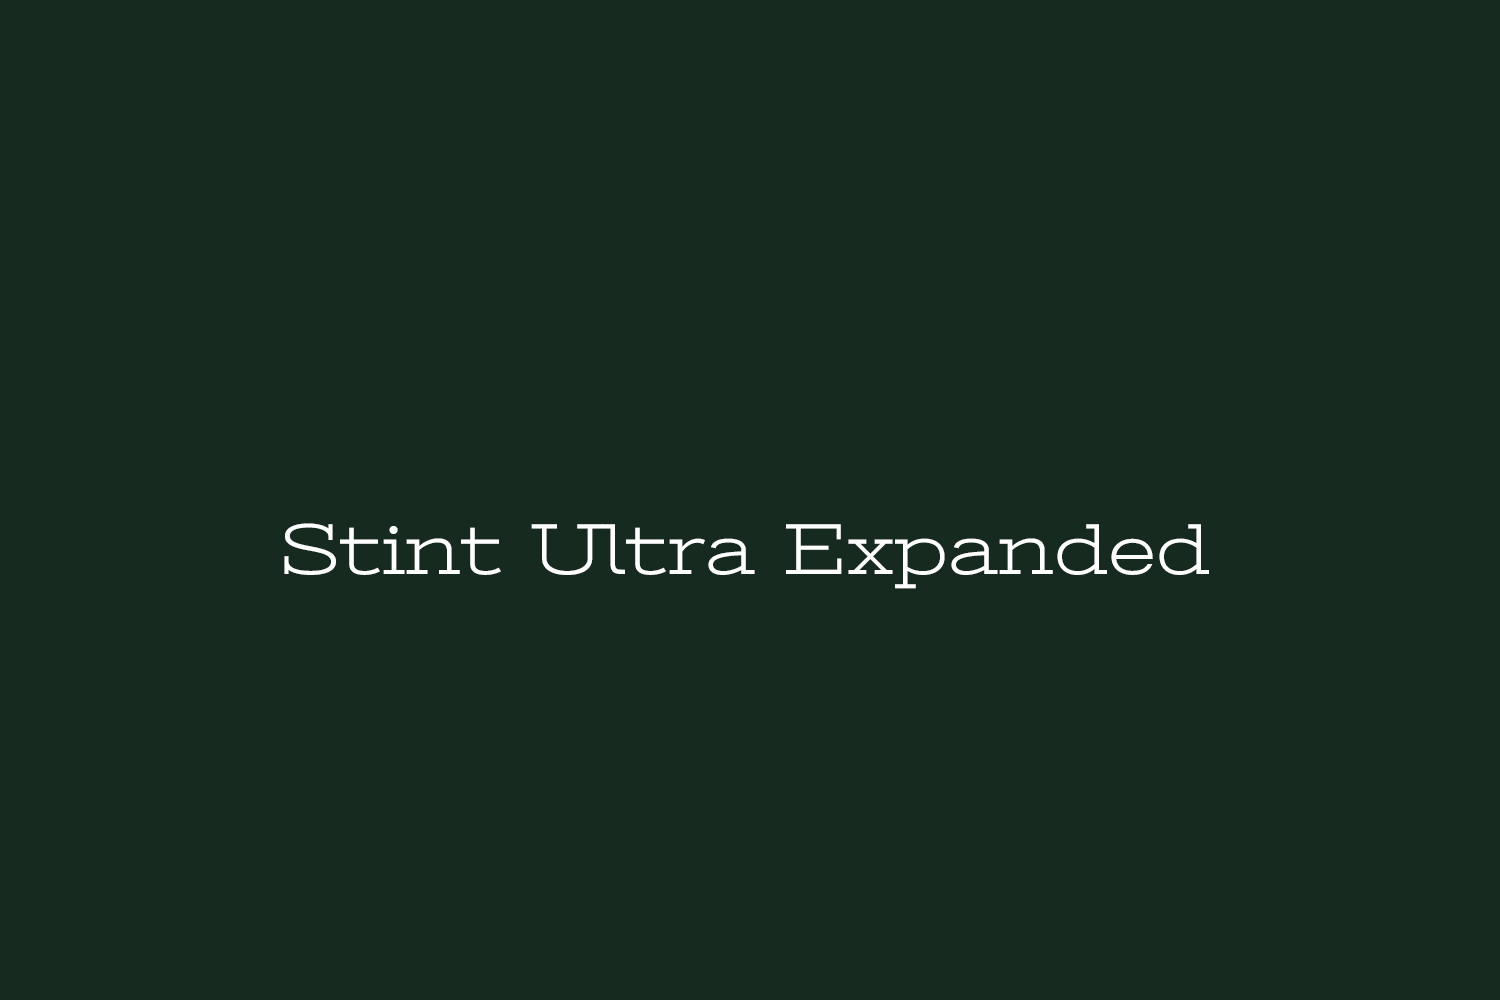 Stint Ultra Expanded